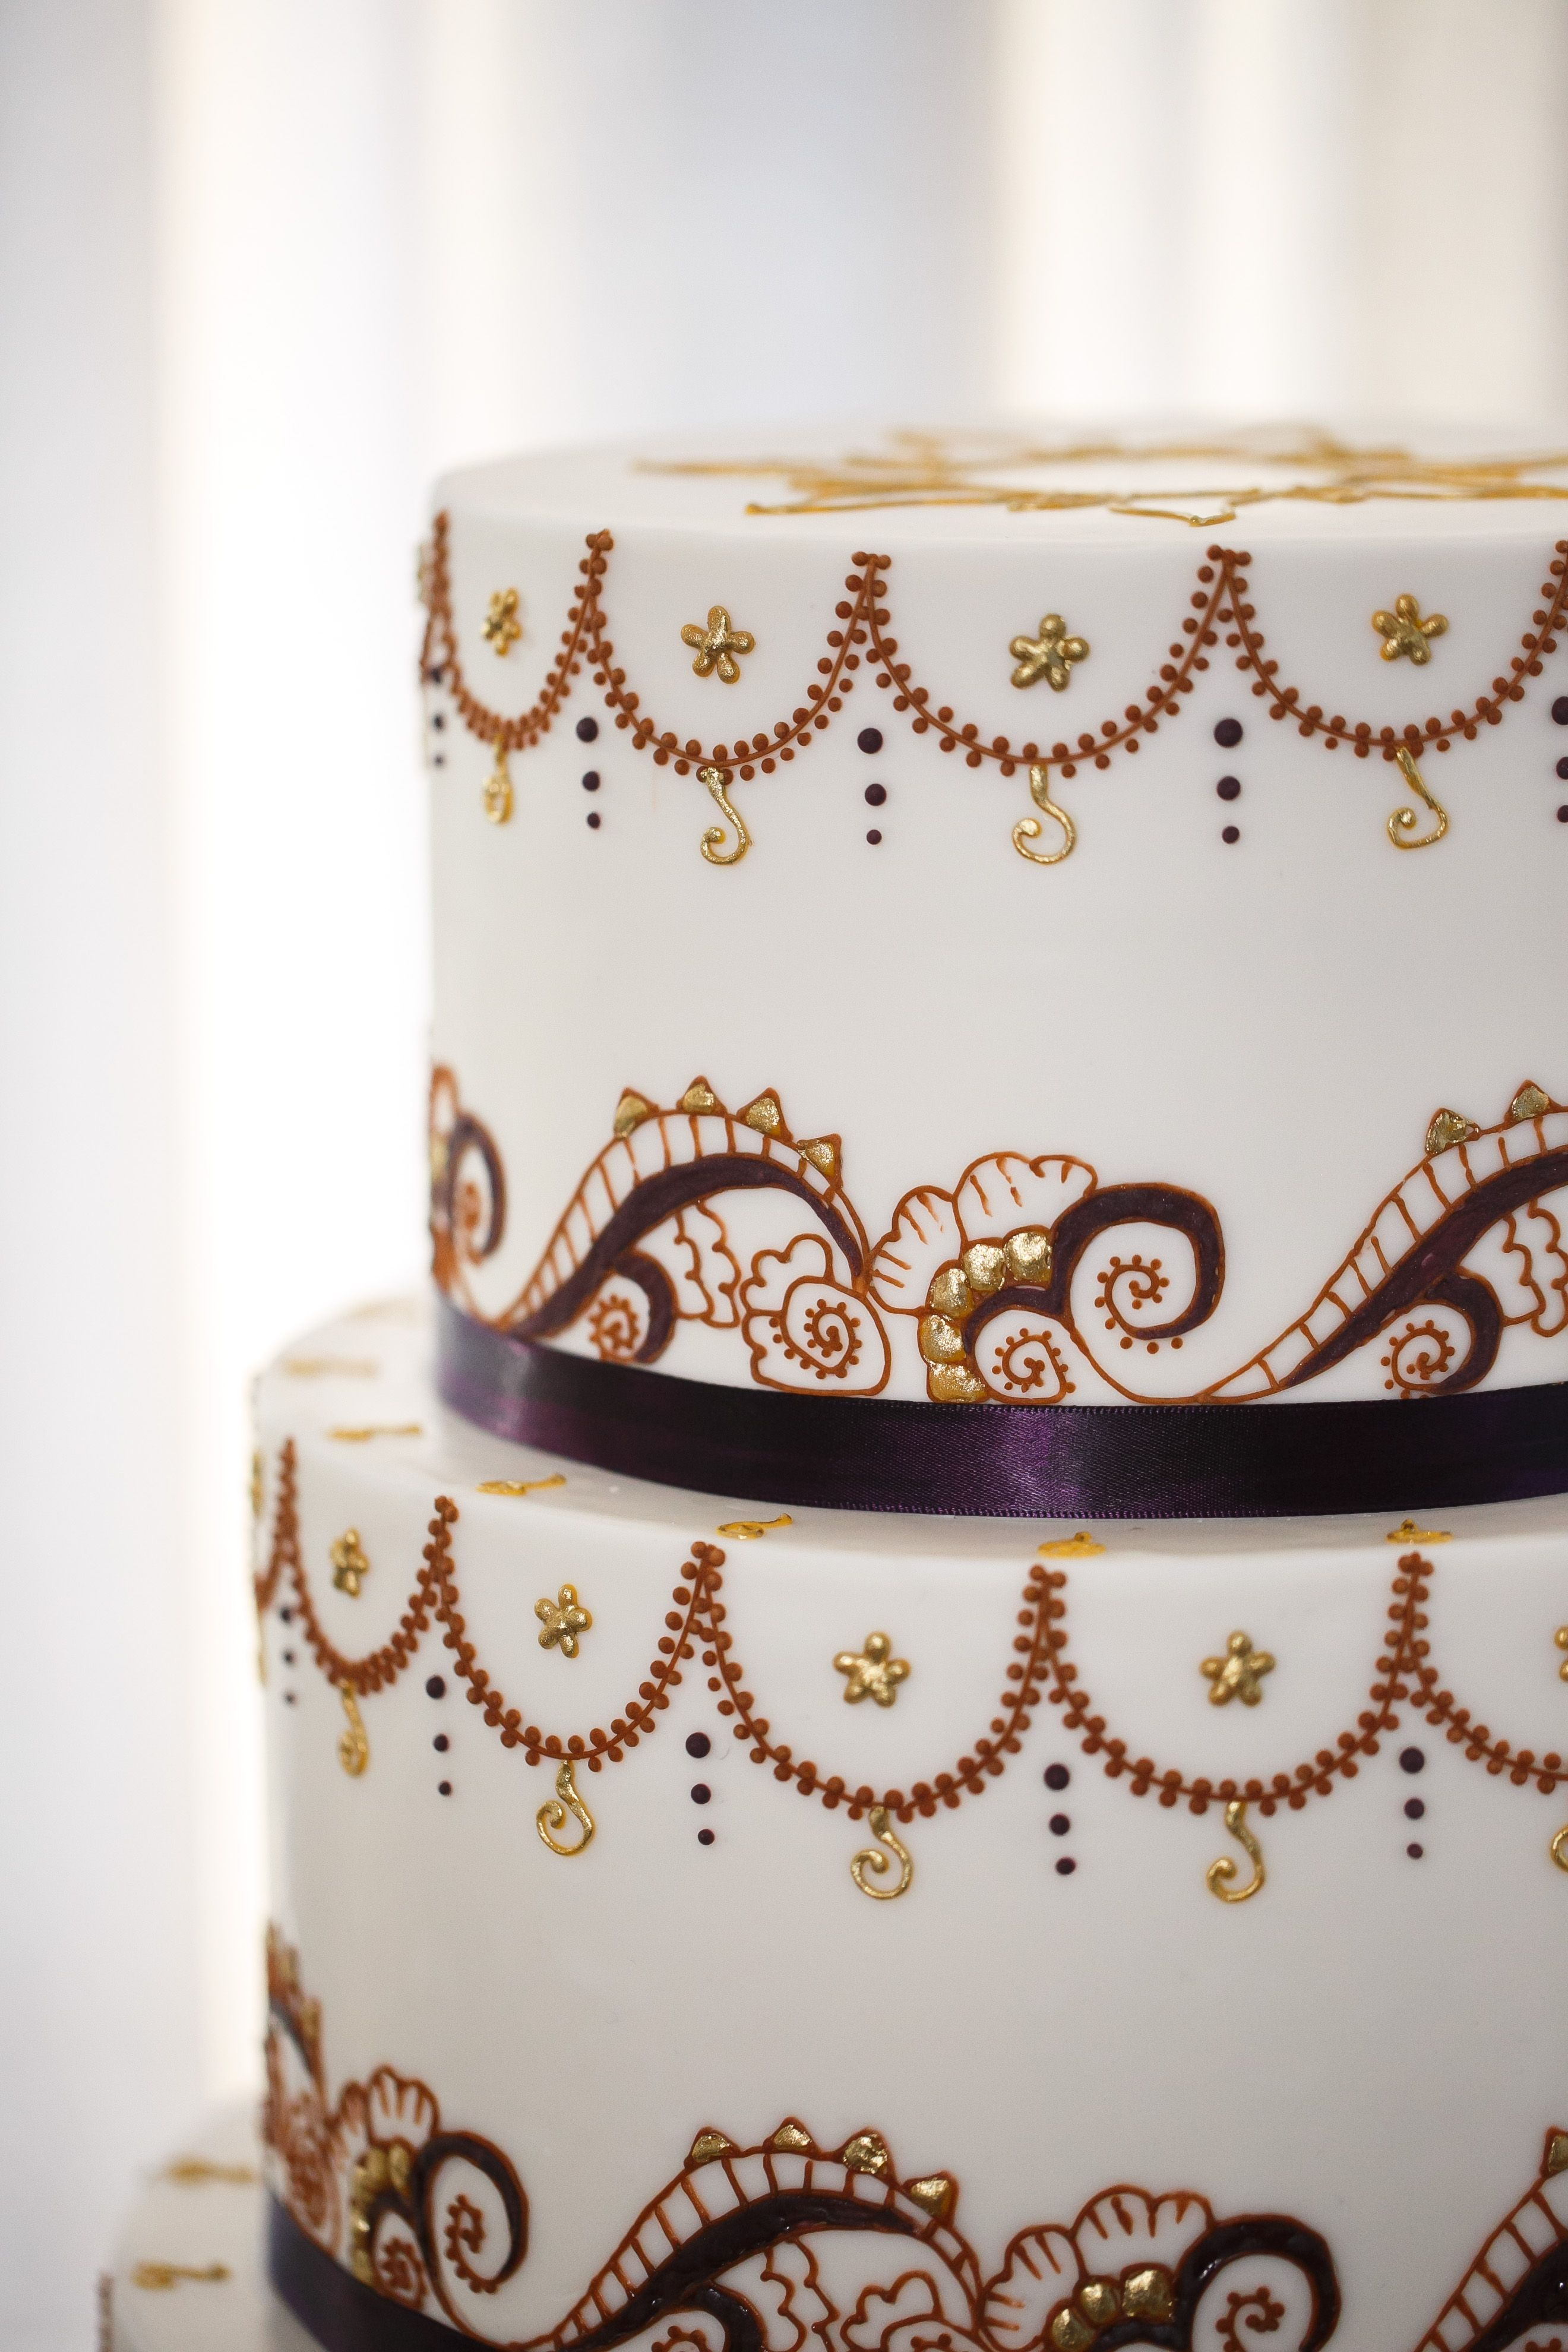 3 tier wedding cake • bold modern elegant • intricate hand-piped ...